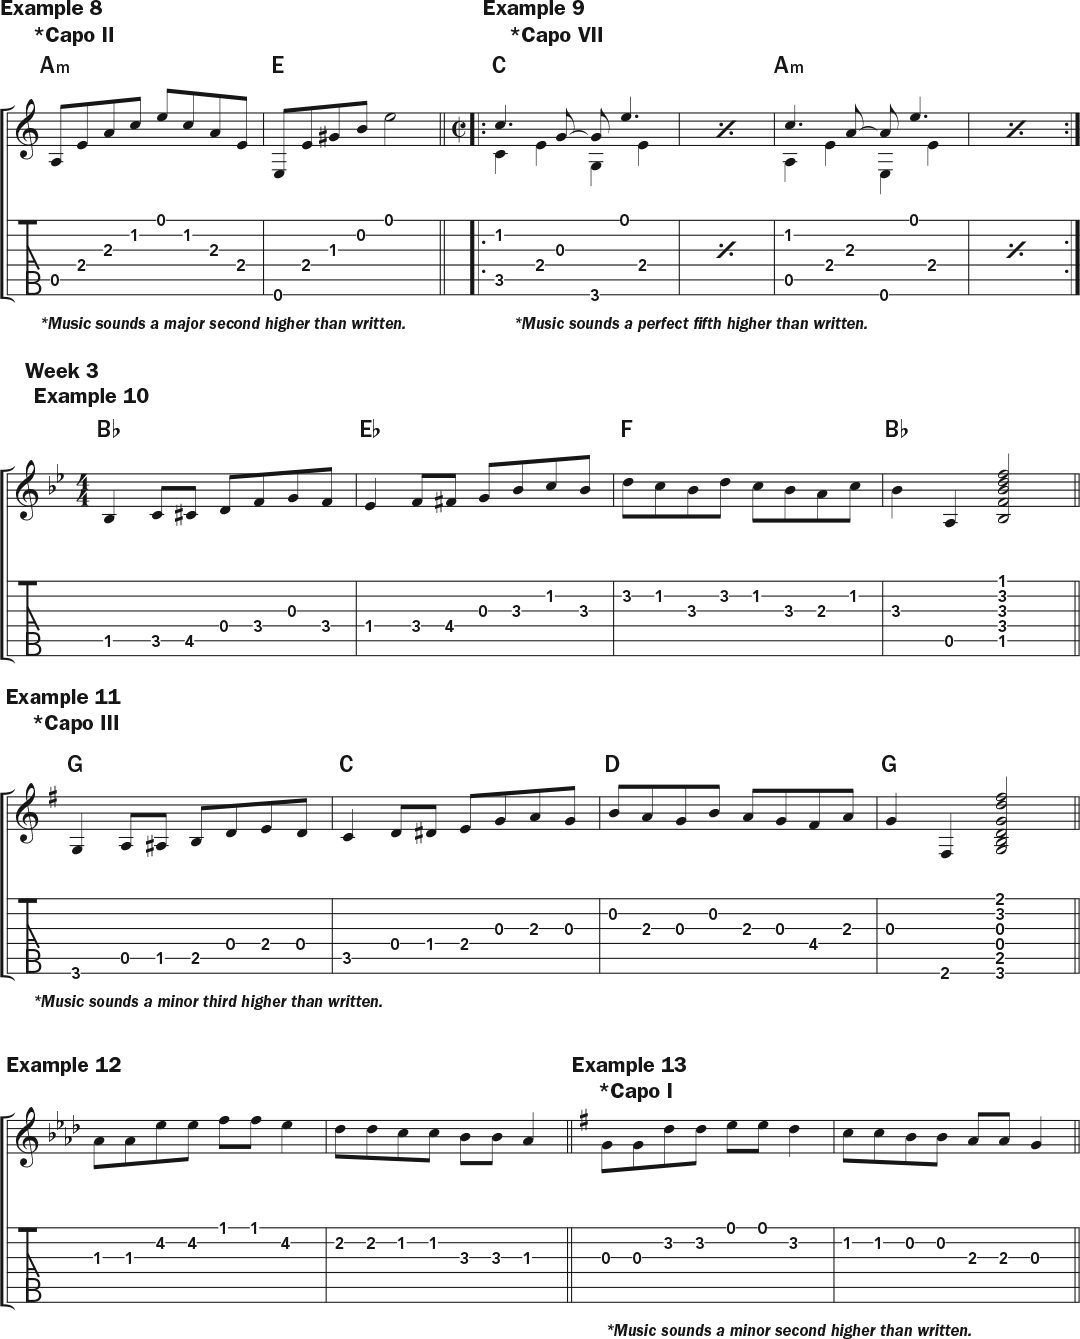 musical notation and tablature for Jamie Stillway's weekly workout acoustic guitar lesson on how to use a capo, page two